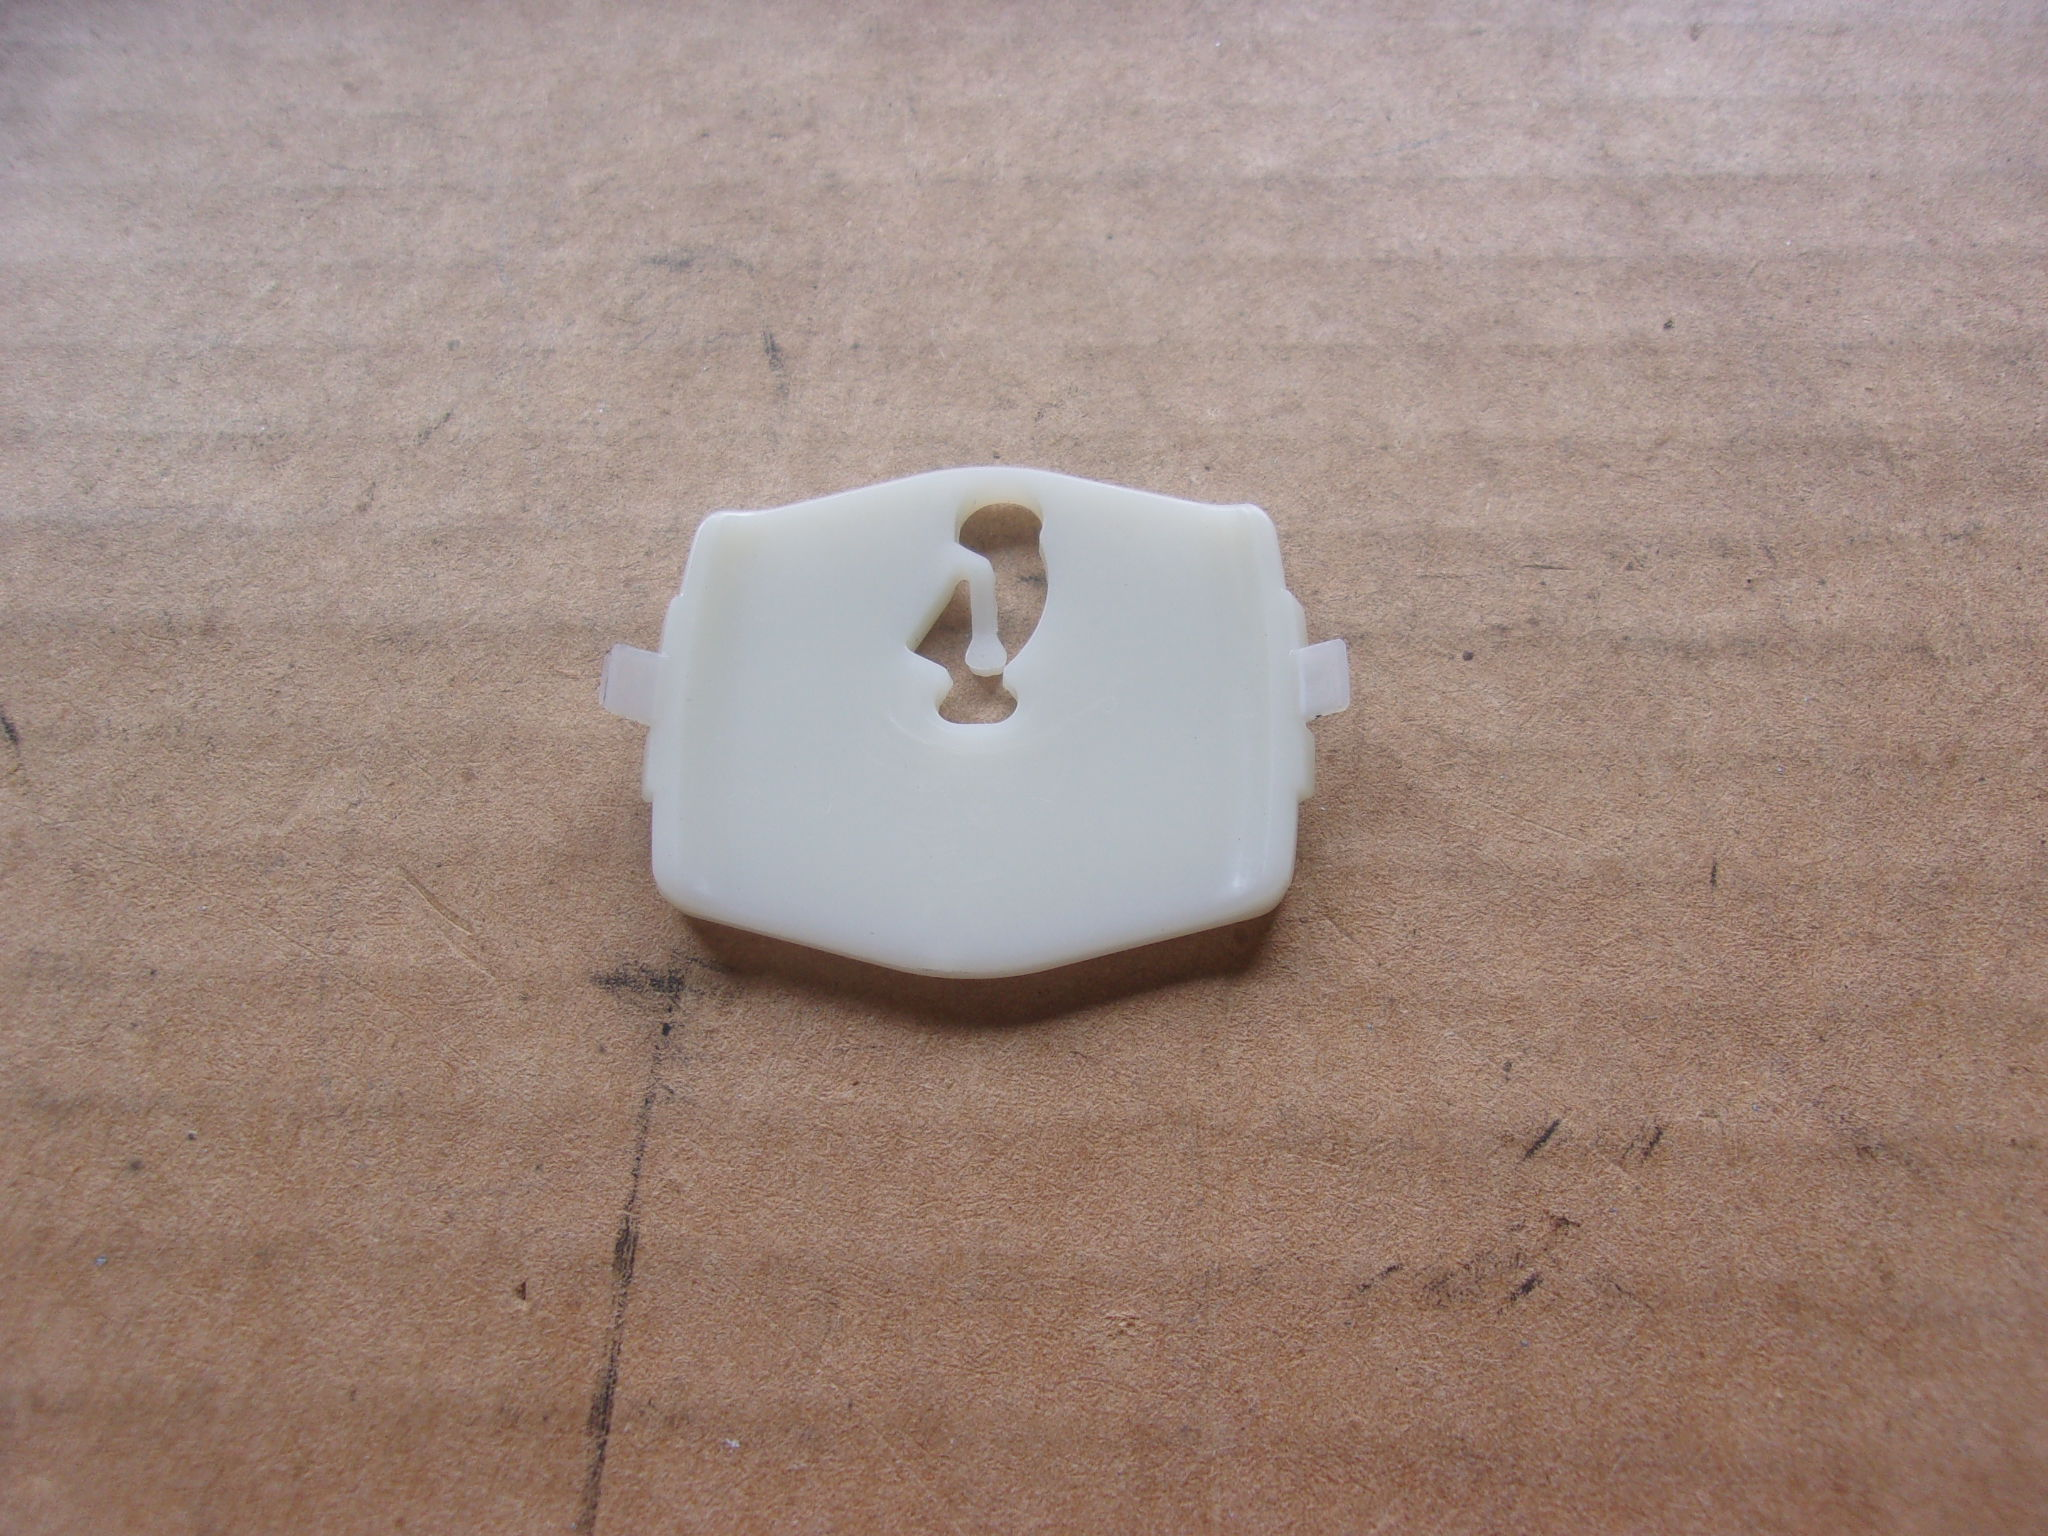 69 Barracuda 70-72 Duster WIDE Rocker Moulding Clip